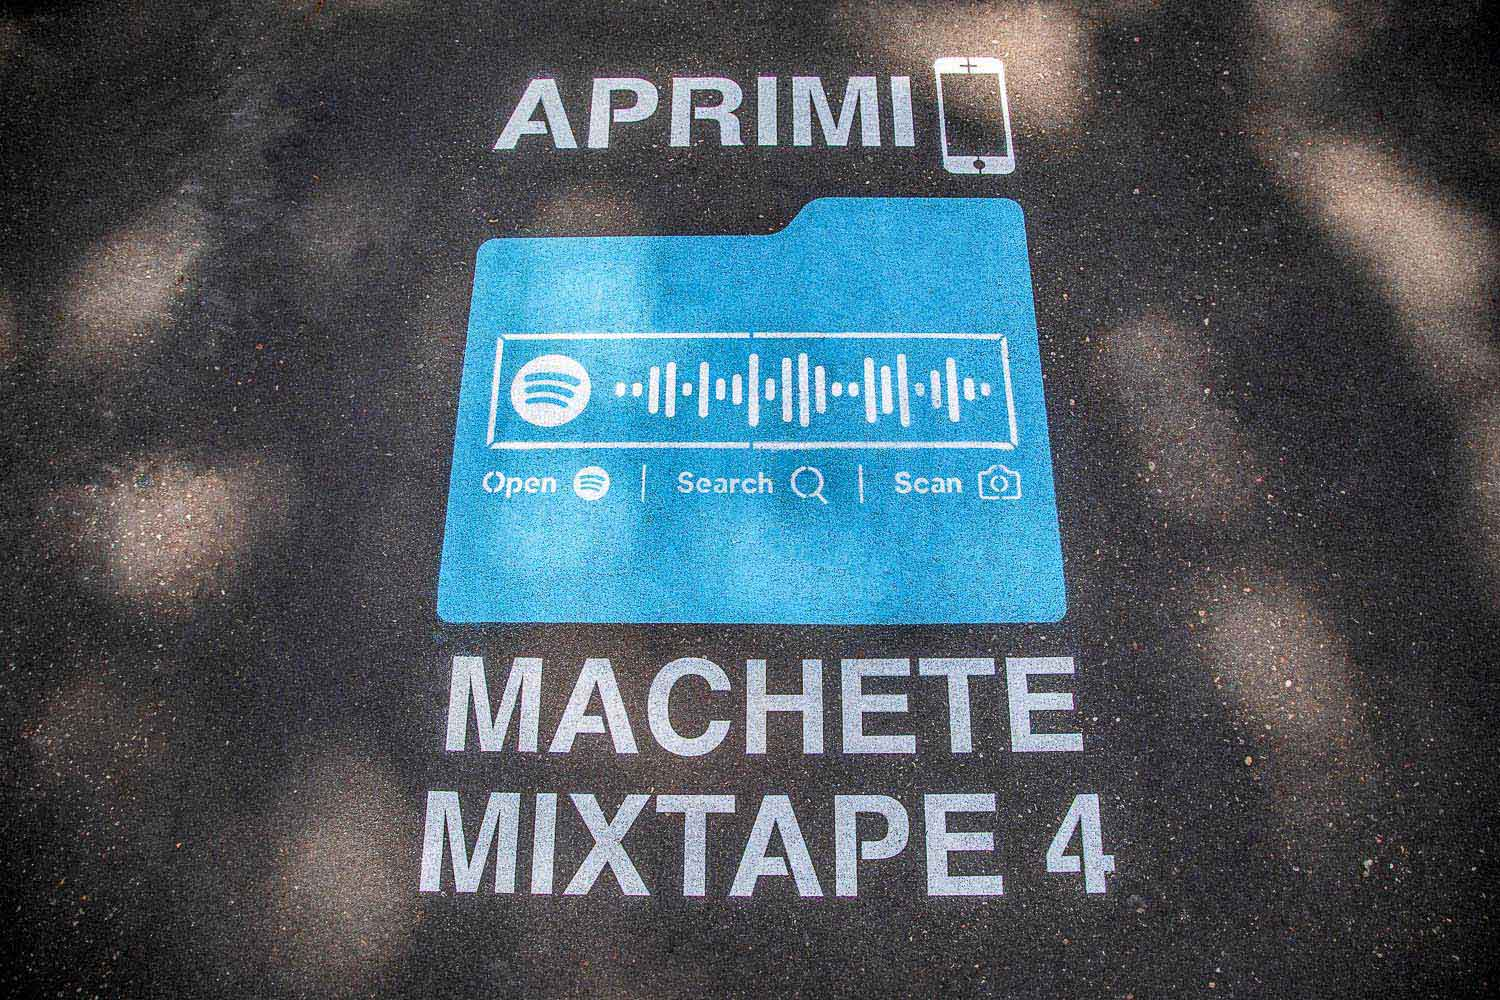 unconventional marketing sony music machete mixtape